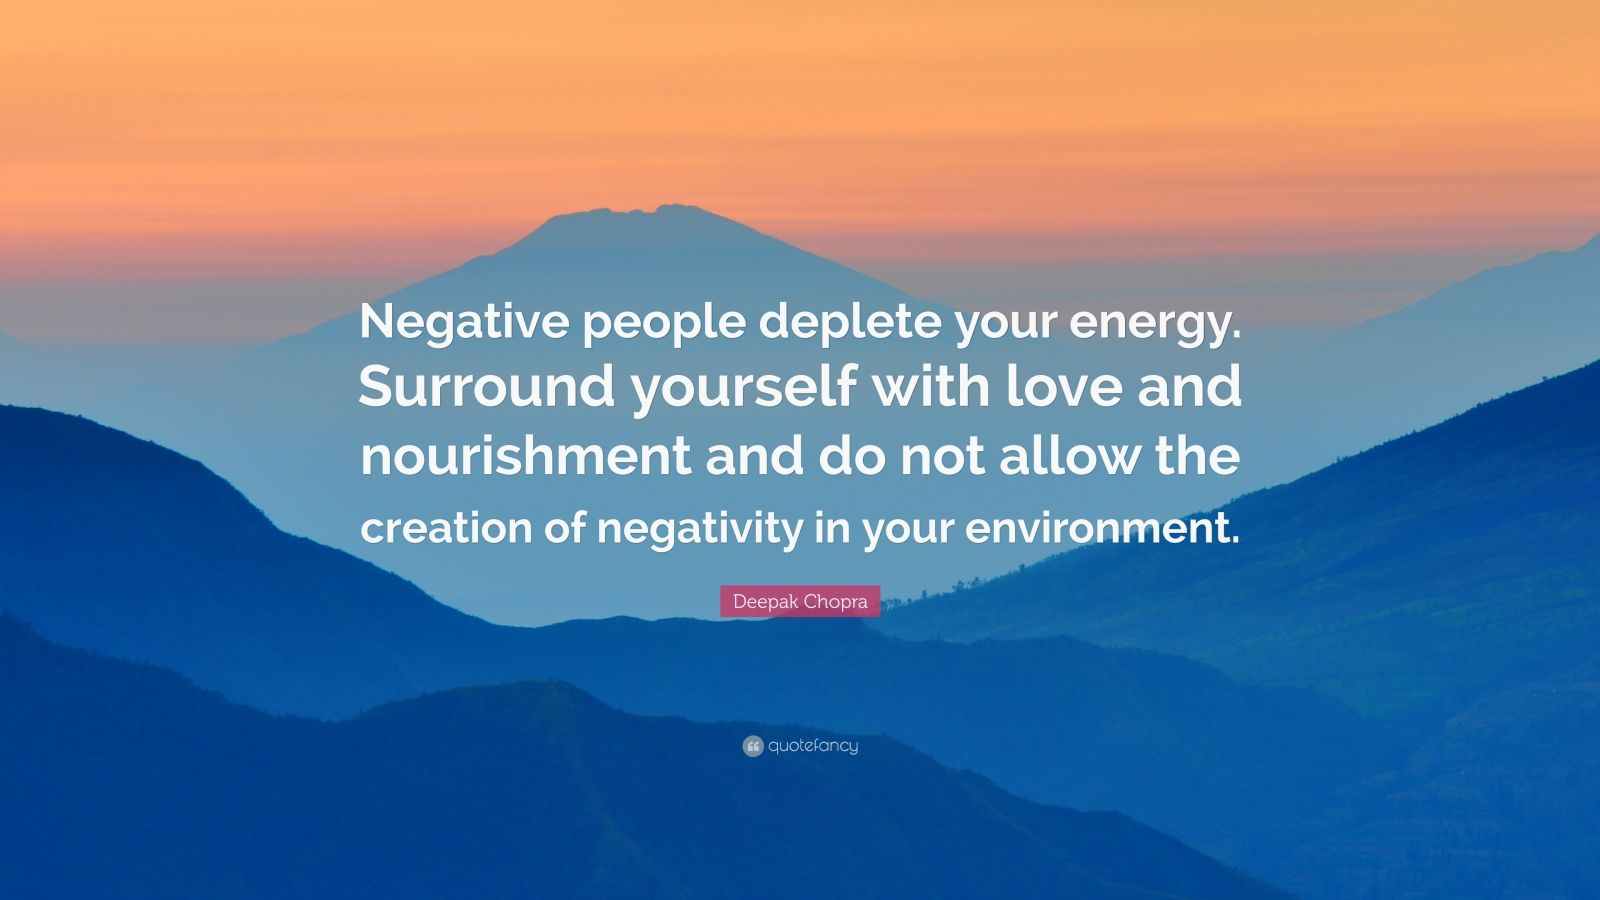 """Deepak Chopra Quote: """"Negative people deplete your energy. Surround yourself with love and nourishment and do not allow the creation of negativity in your environment."""""""